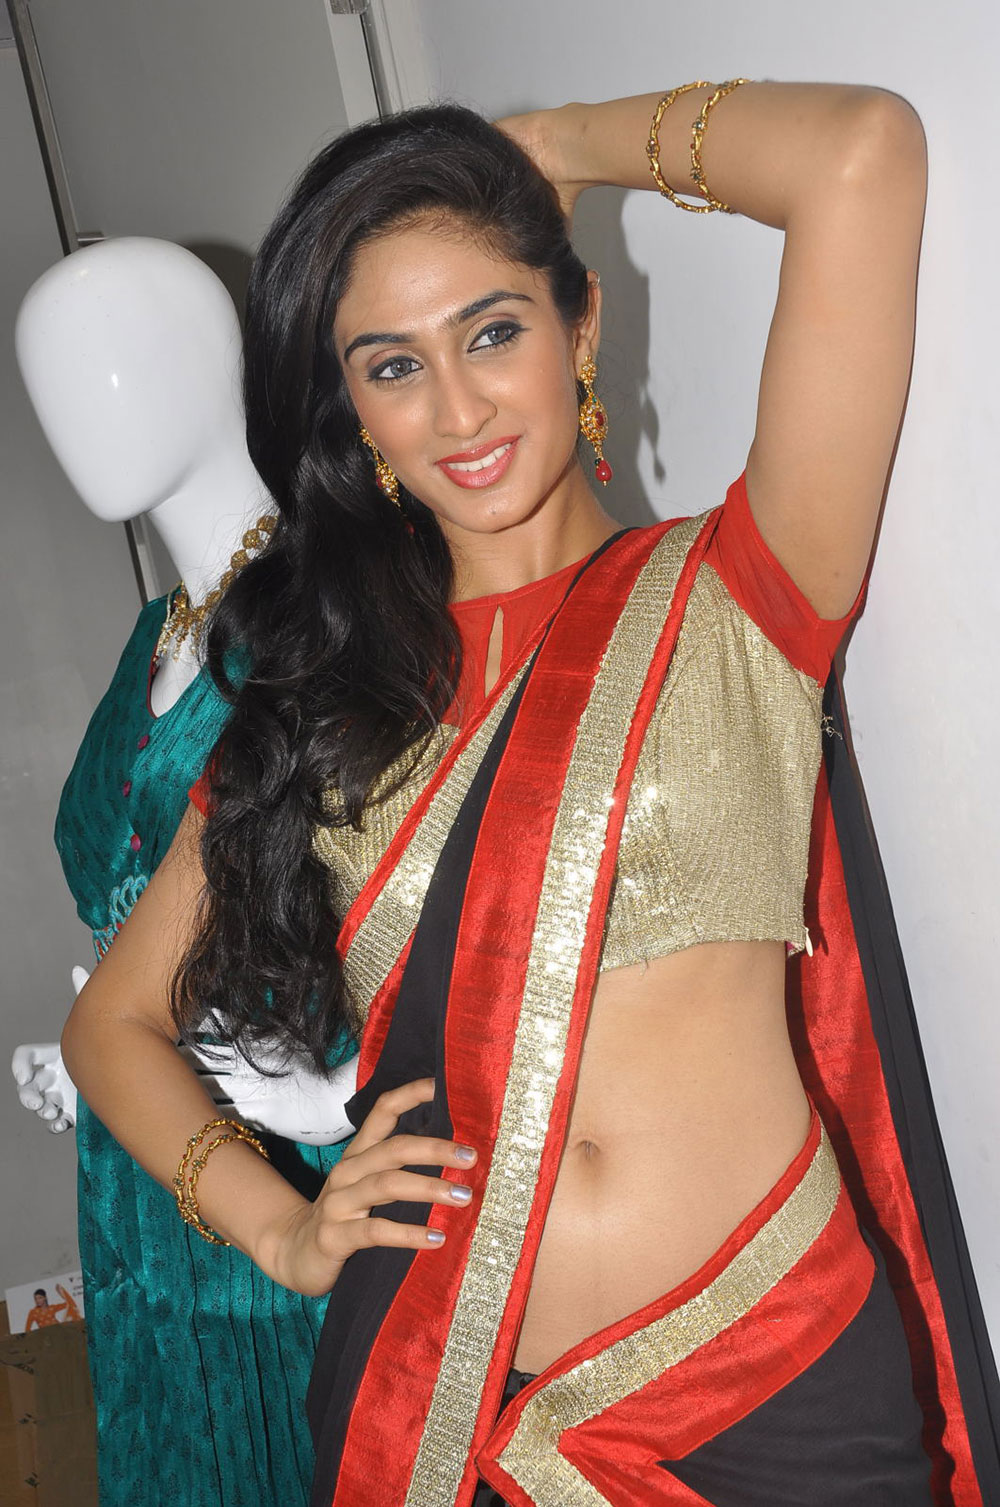 Deepti sati hot pics at kalaniketan bride & groom collection launch